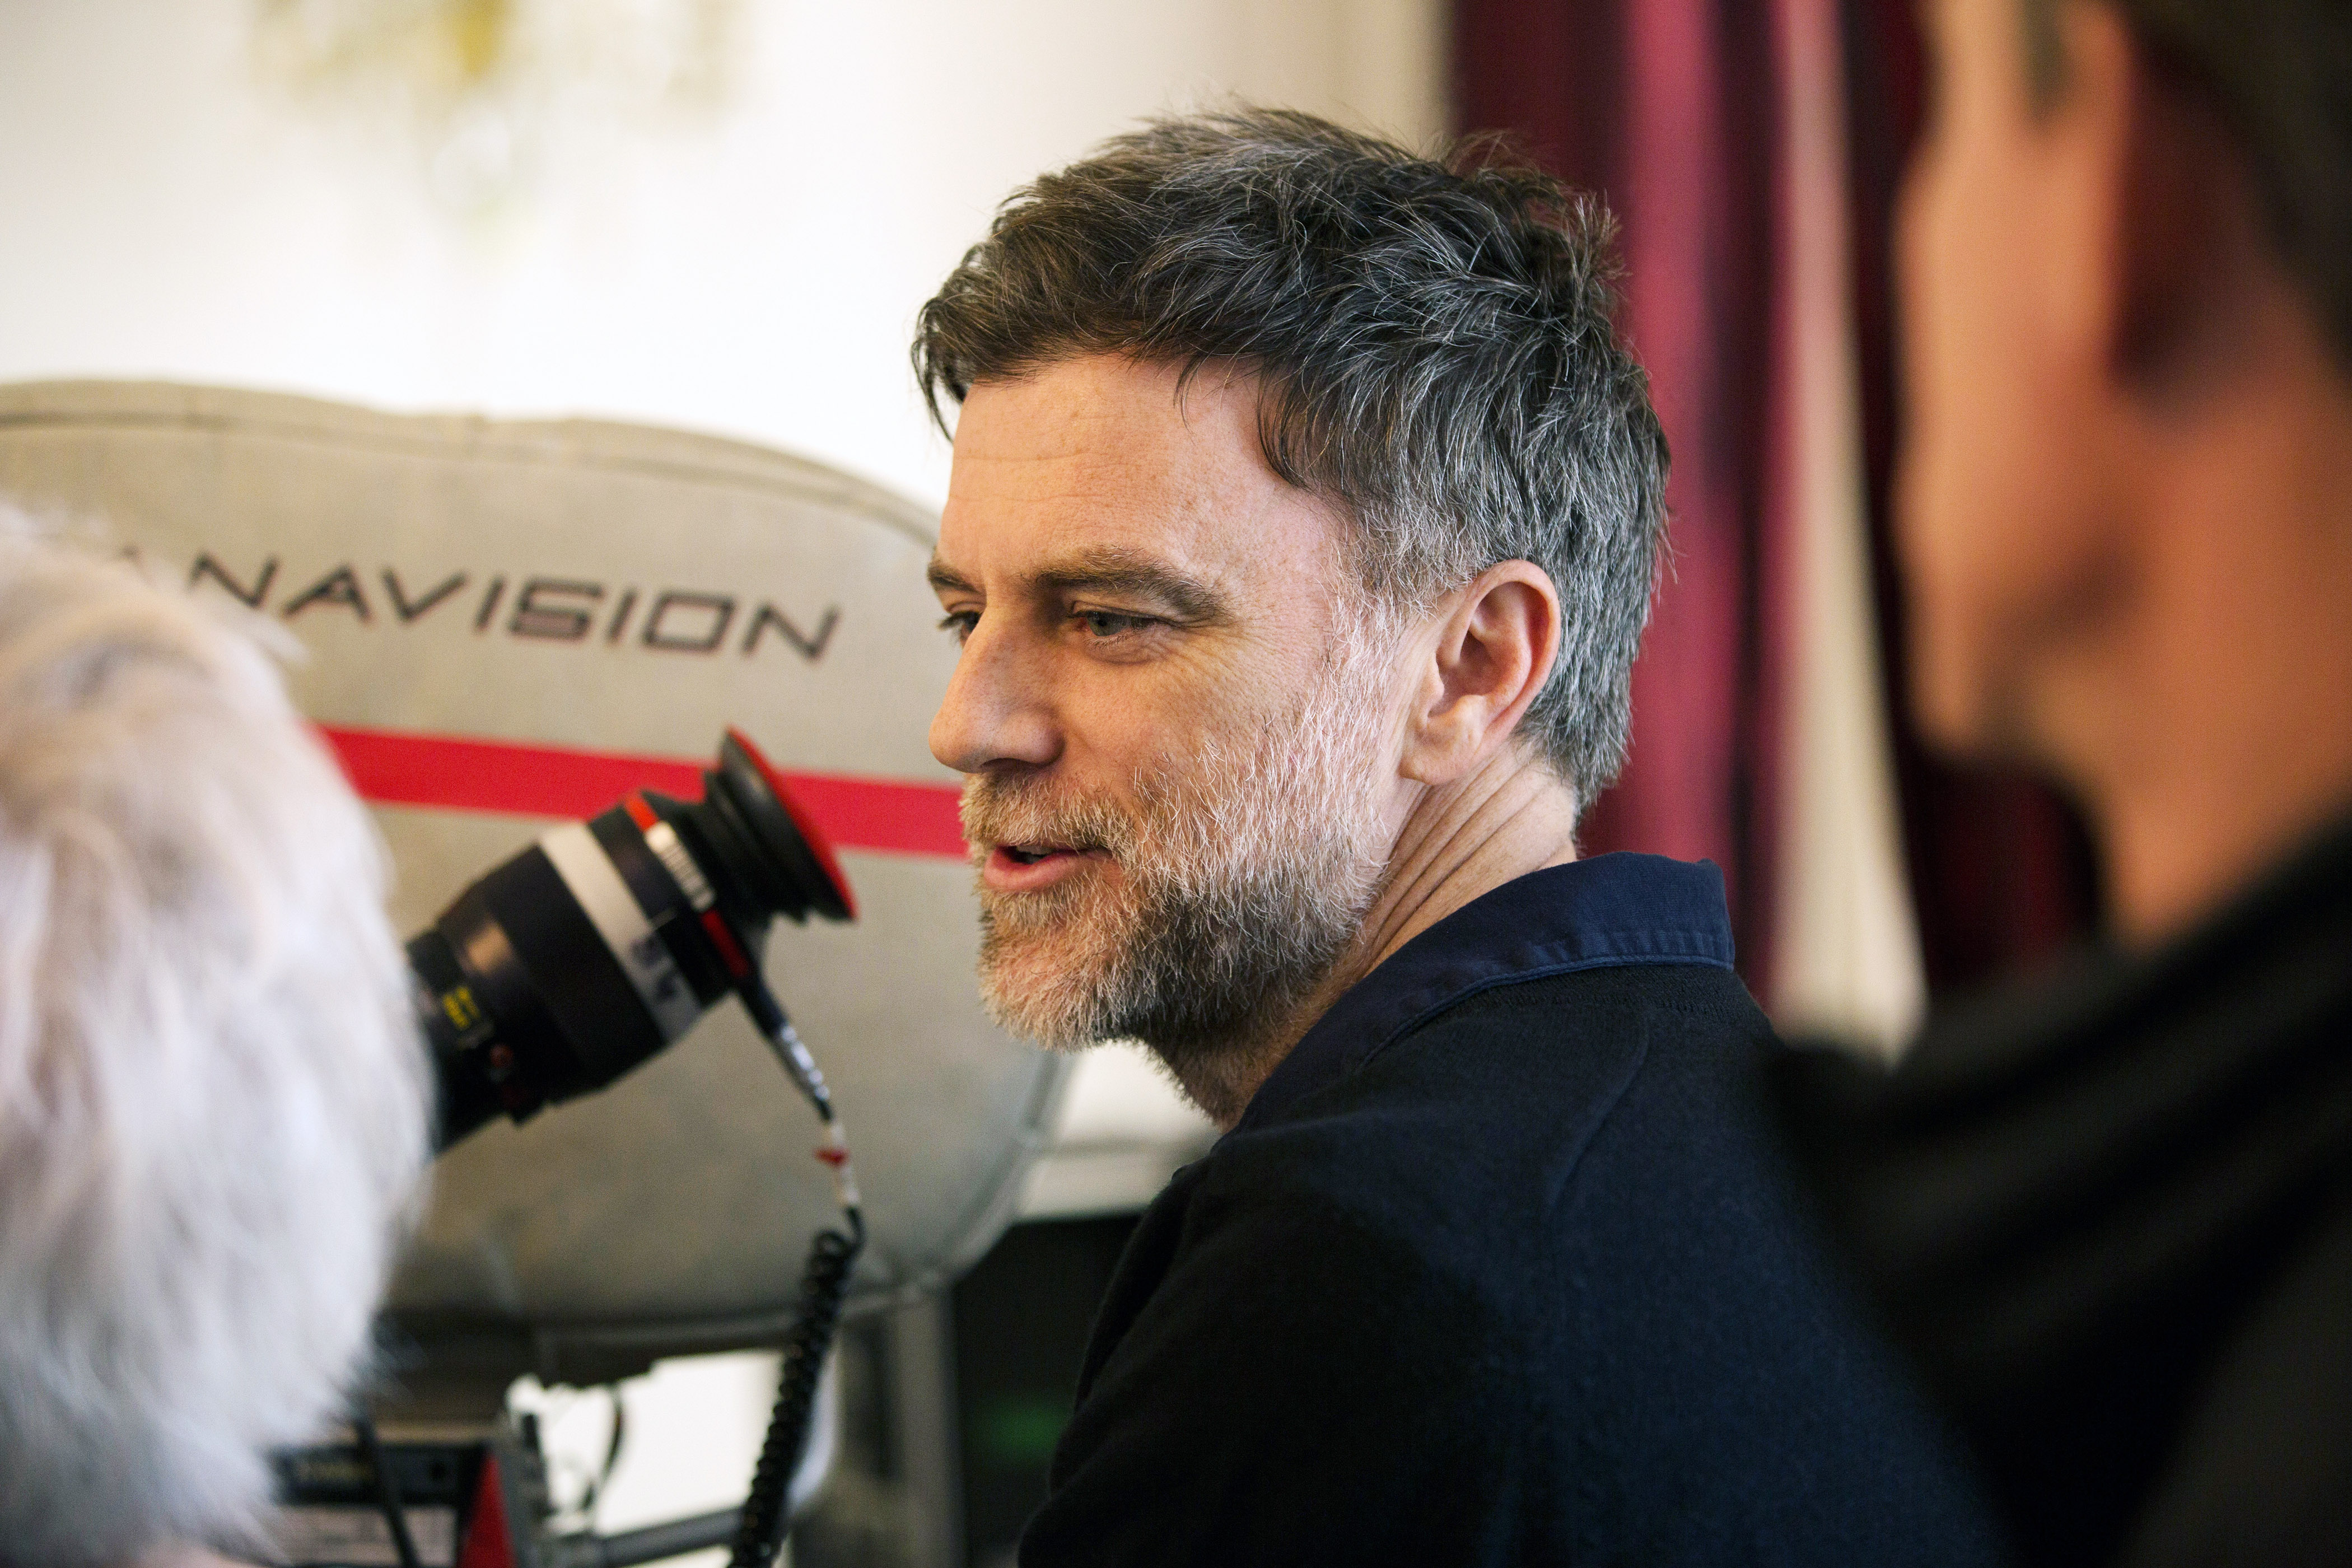 Paul Thomas Anderson's Unused Film Dialogue Appeared on Haim Album, but He Took No Writing Credit